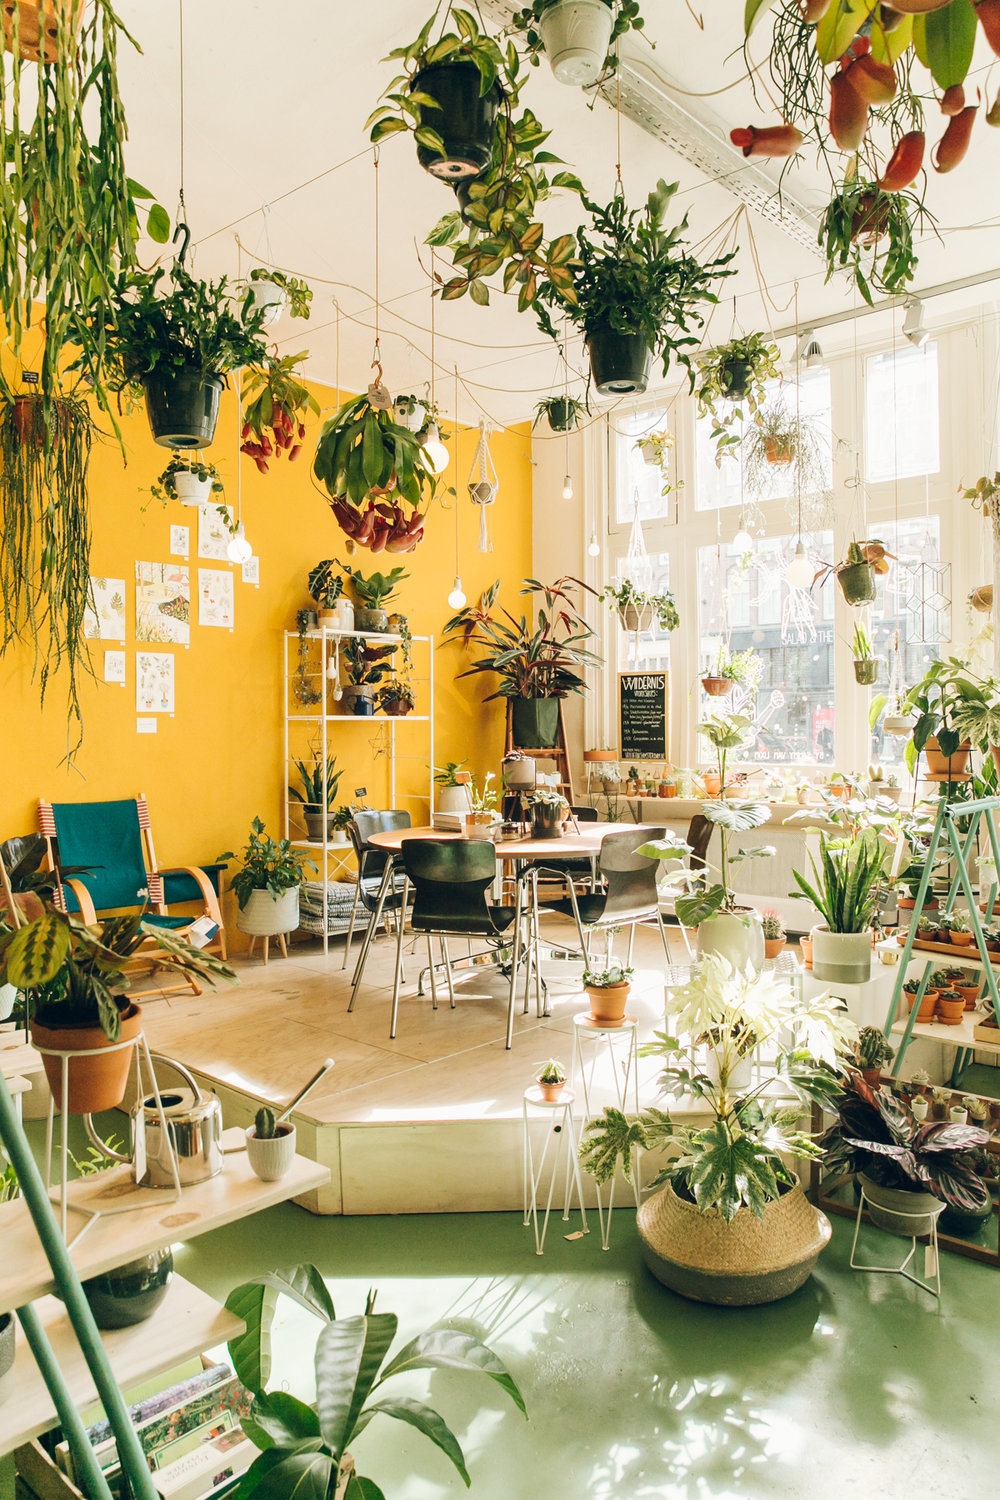 a_plant_shop_called_wildernis_in_amsterdam-.jpg